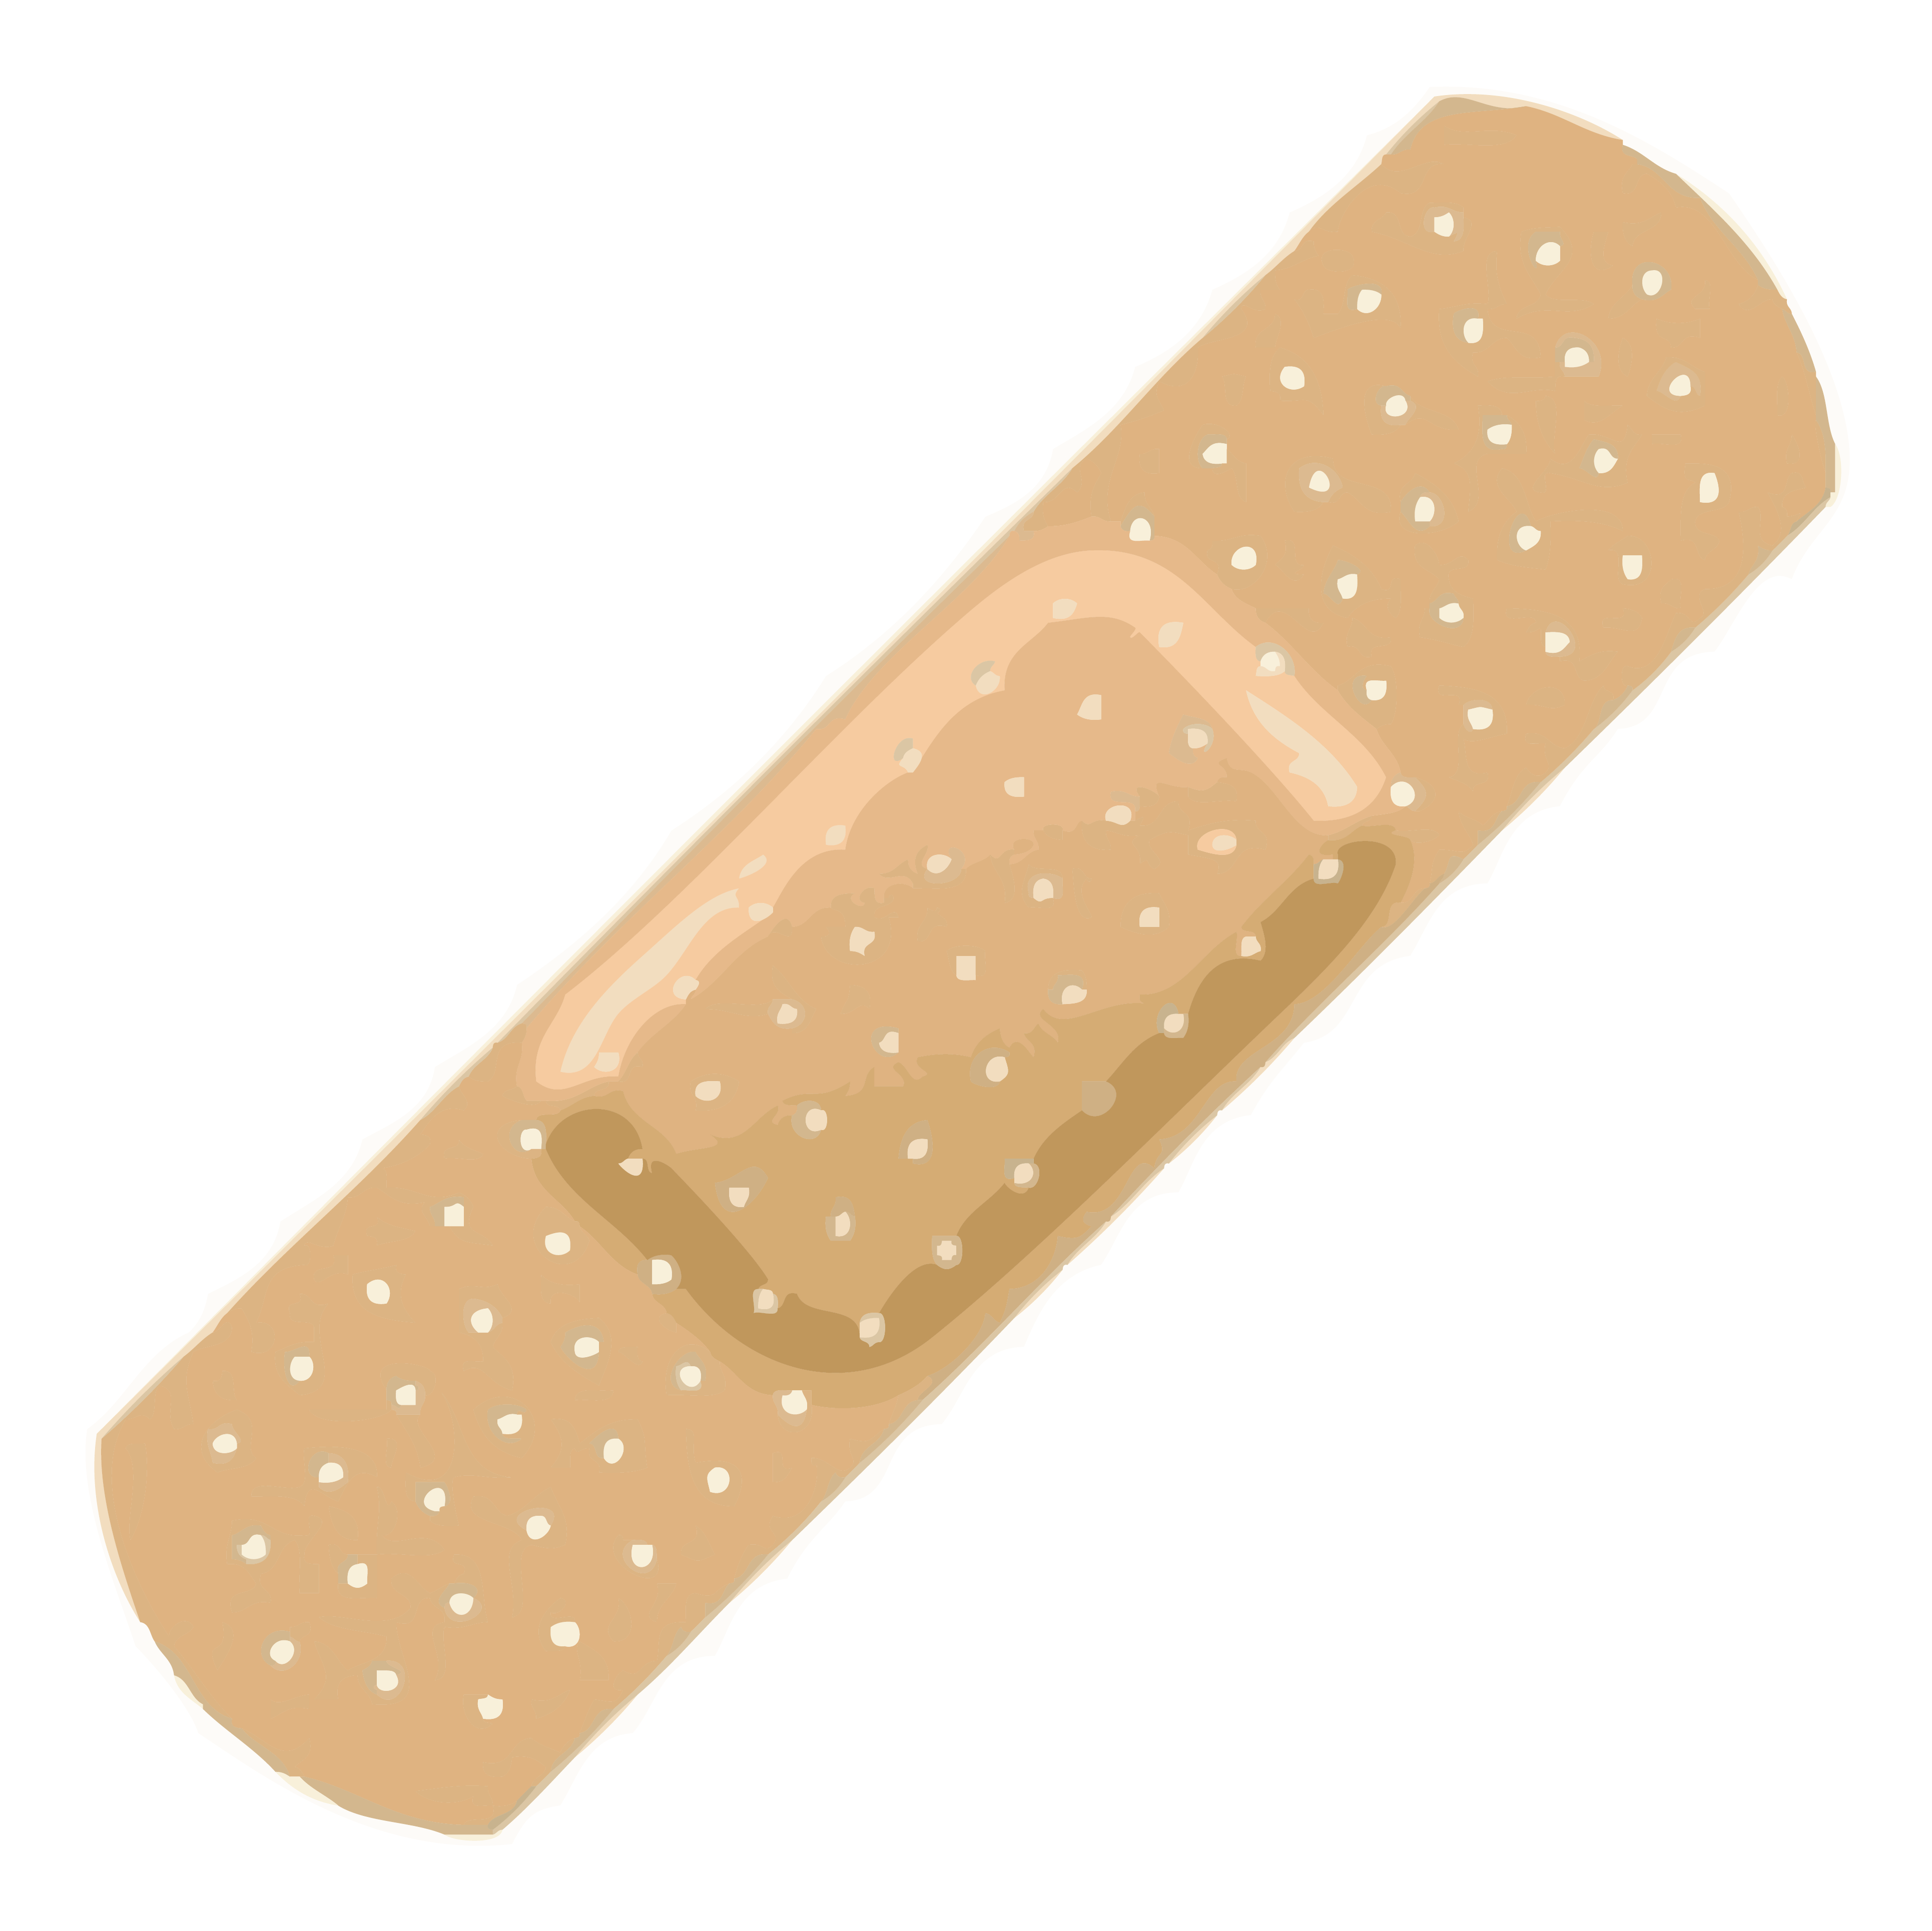 Bandaid clipart transparent background.  collection of band